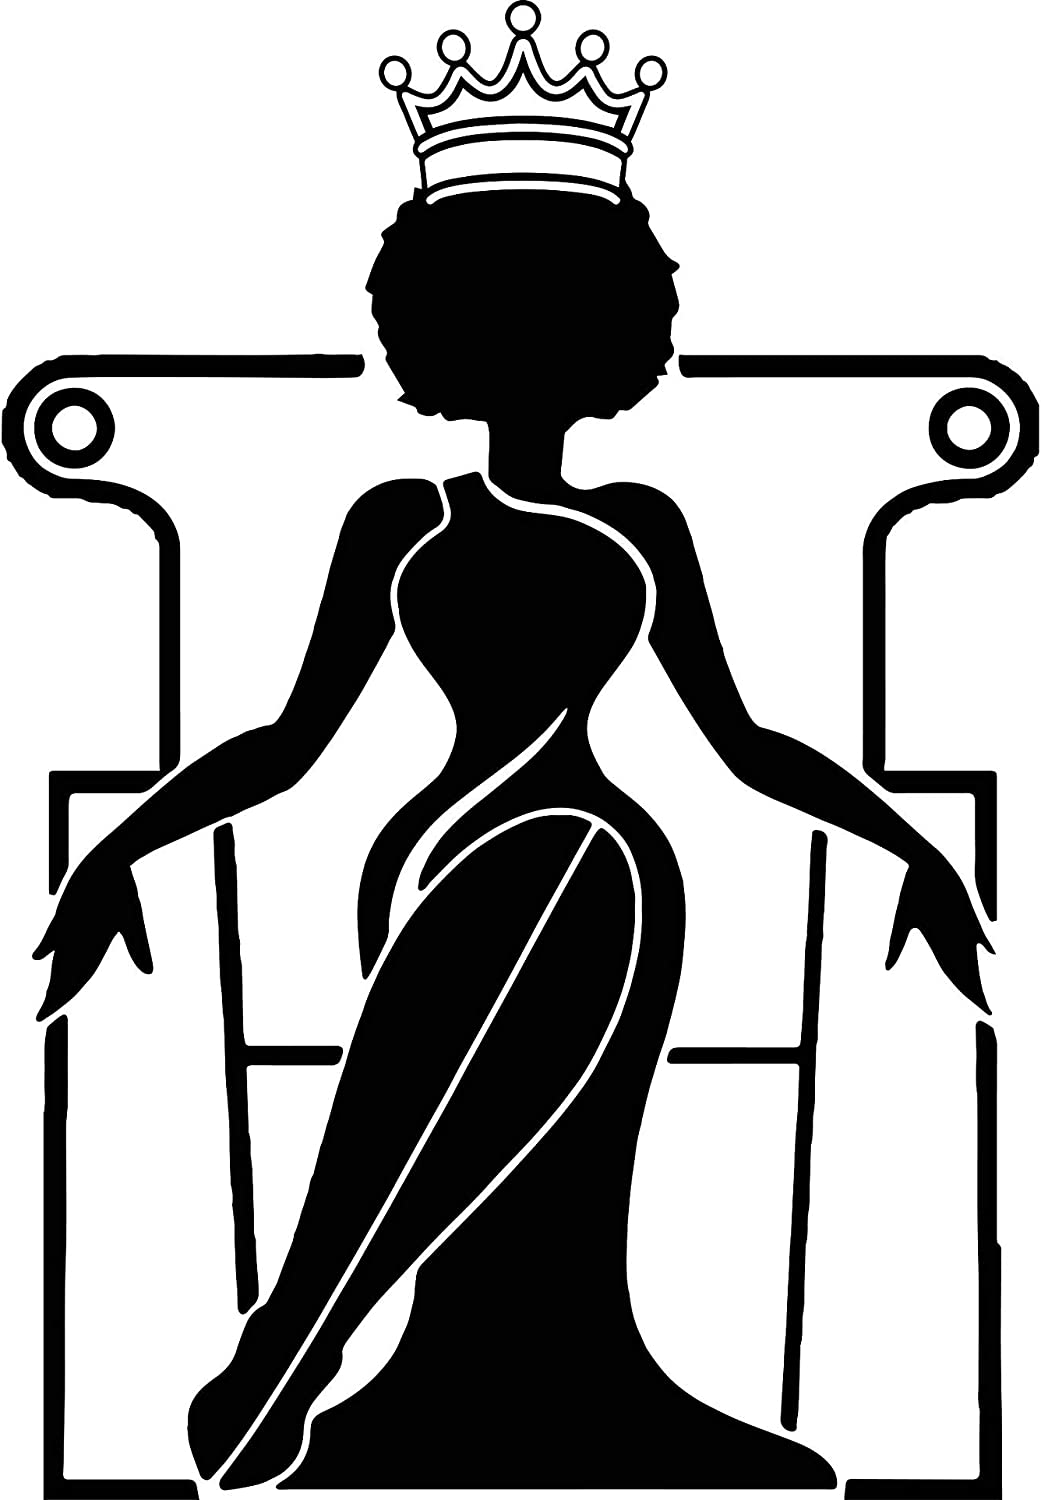 Amazon Com Evelyndavid Black Woman Stylish Princess Princess Queen Afro Hair Beautiful African American Female Lady Sticker Vinyl Decal Vector Clipart Digital Circuit Cut Cutting Kitchen Dining